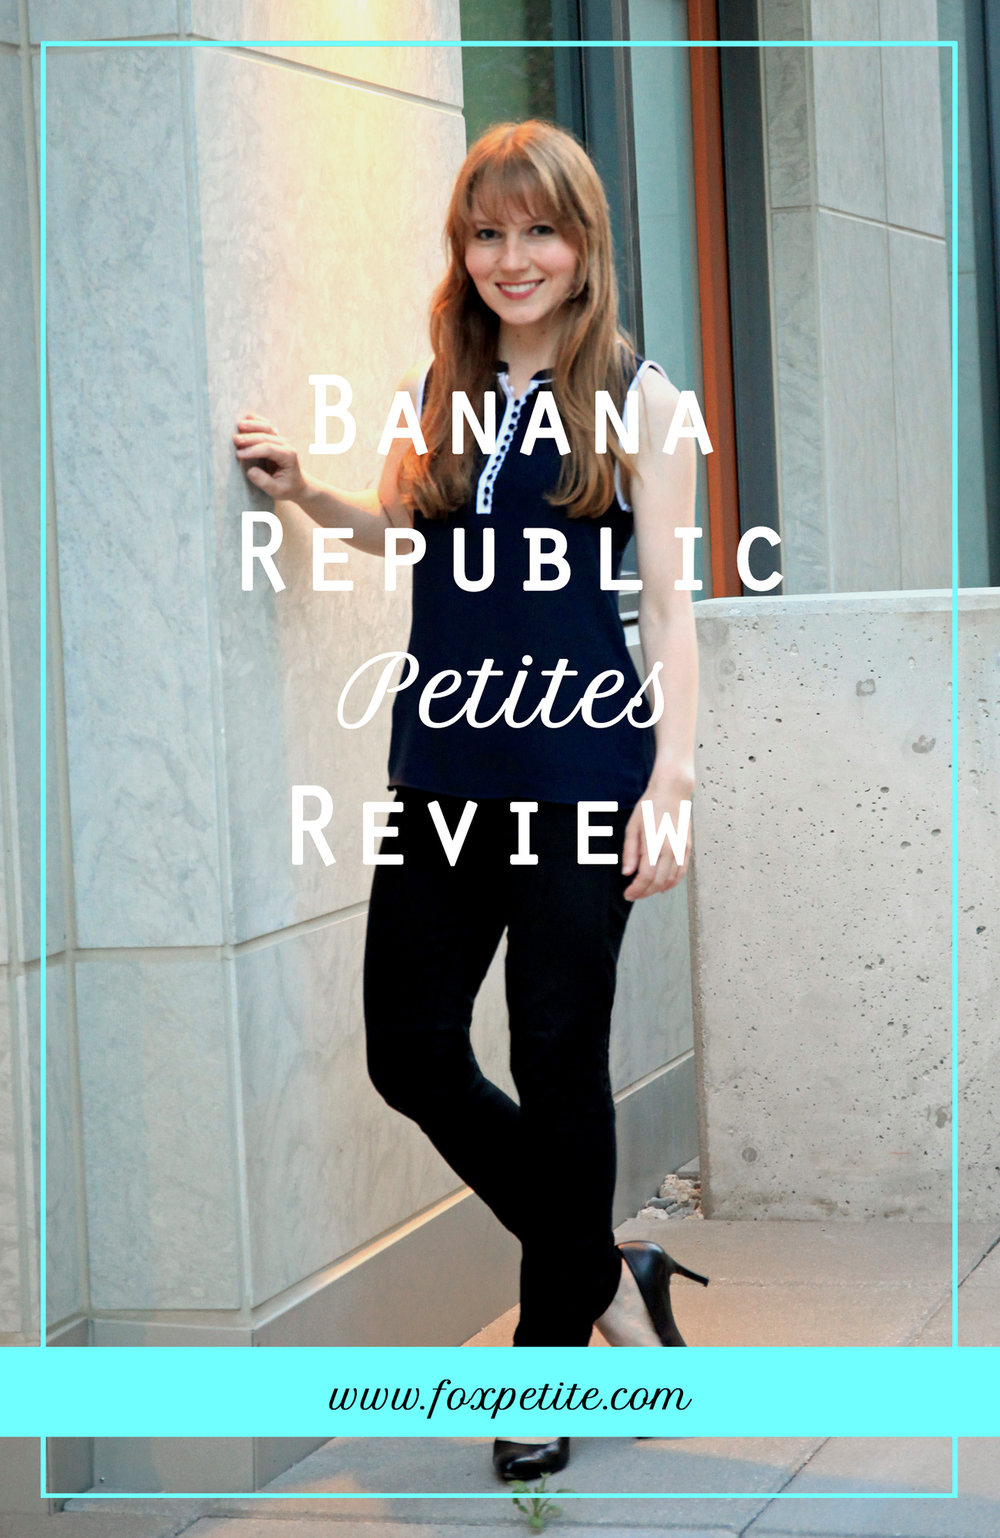 Banana Republic petites review | what a petite blogger thinks of BR's latest petite sized clothing for young professional's work outfits | 2018 store review | Fox Petite Fashion Blog, petite style tips |#petite #bananarepublic #workstyle #brstyle